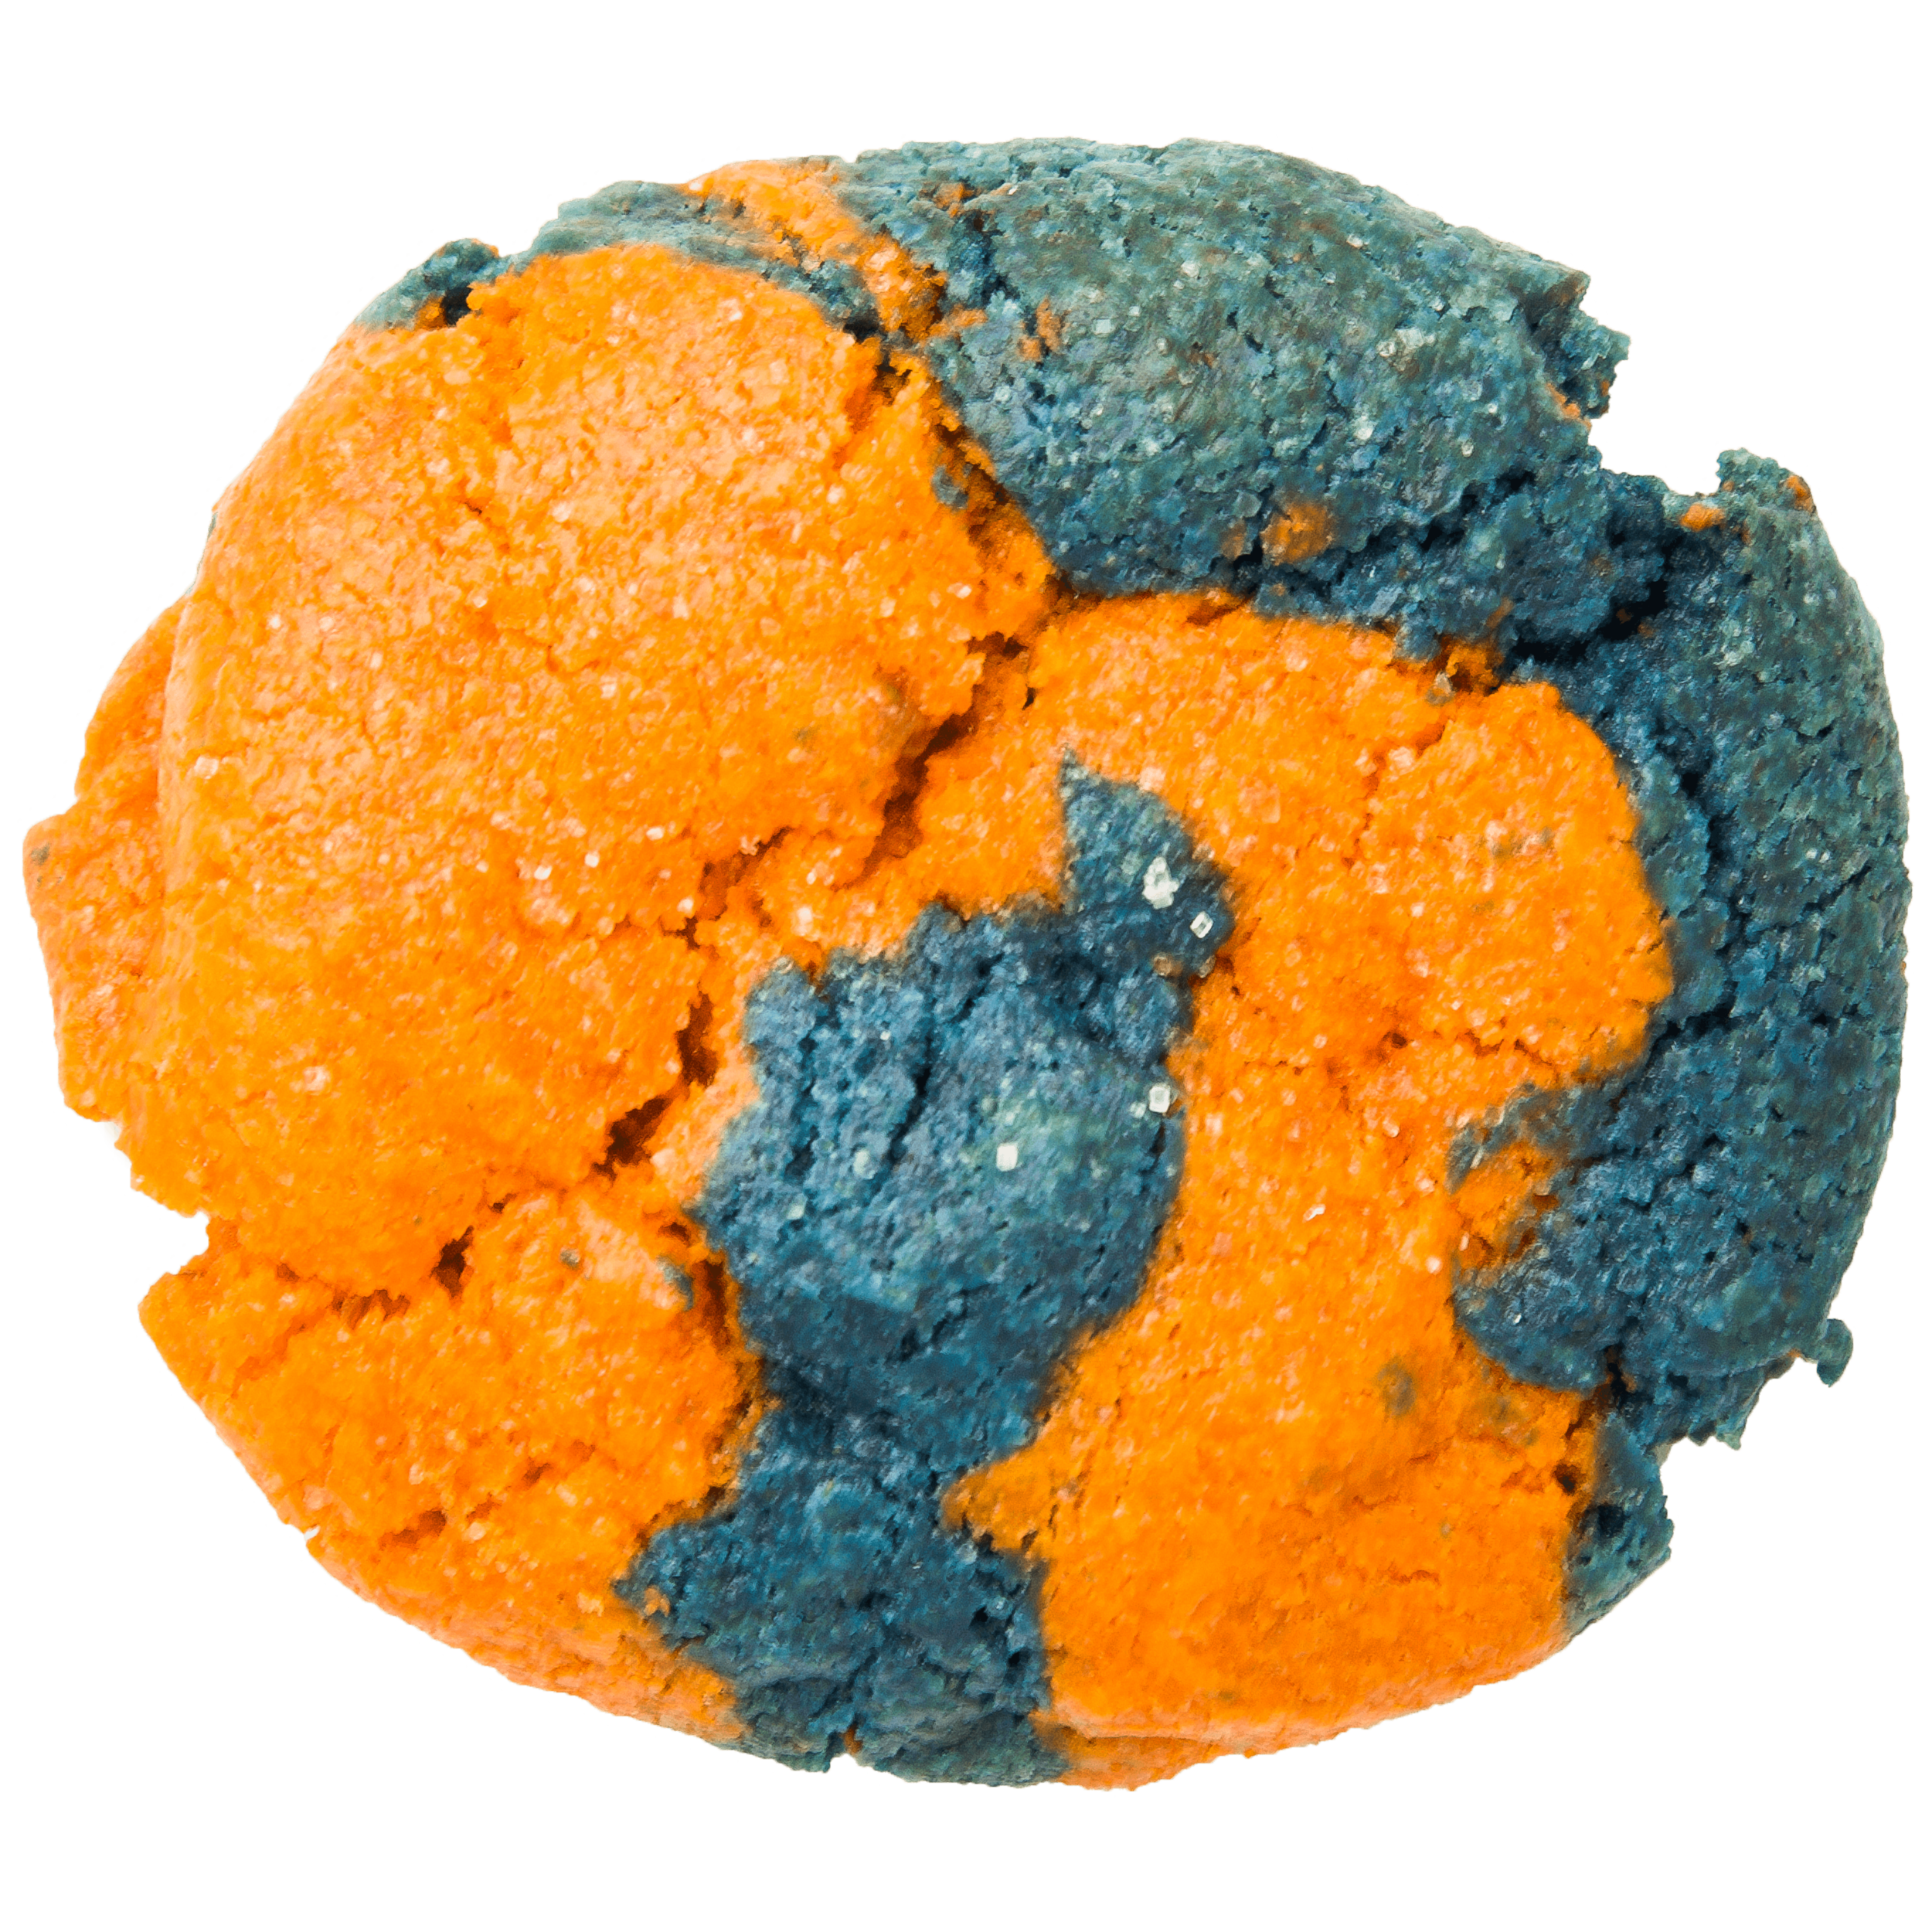 Cookie flavor 10 transparent.png